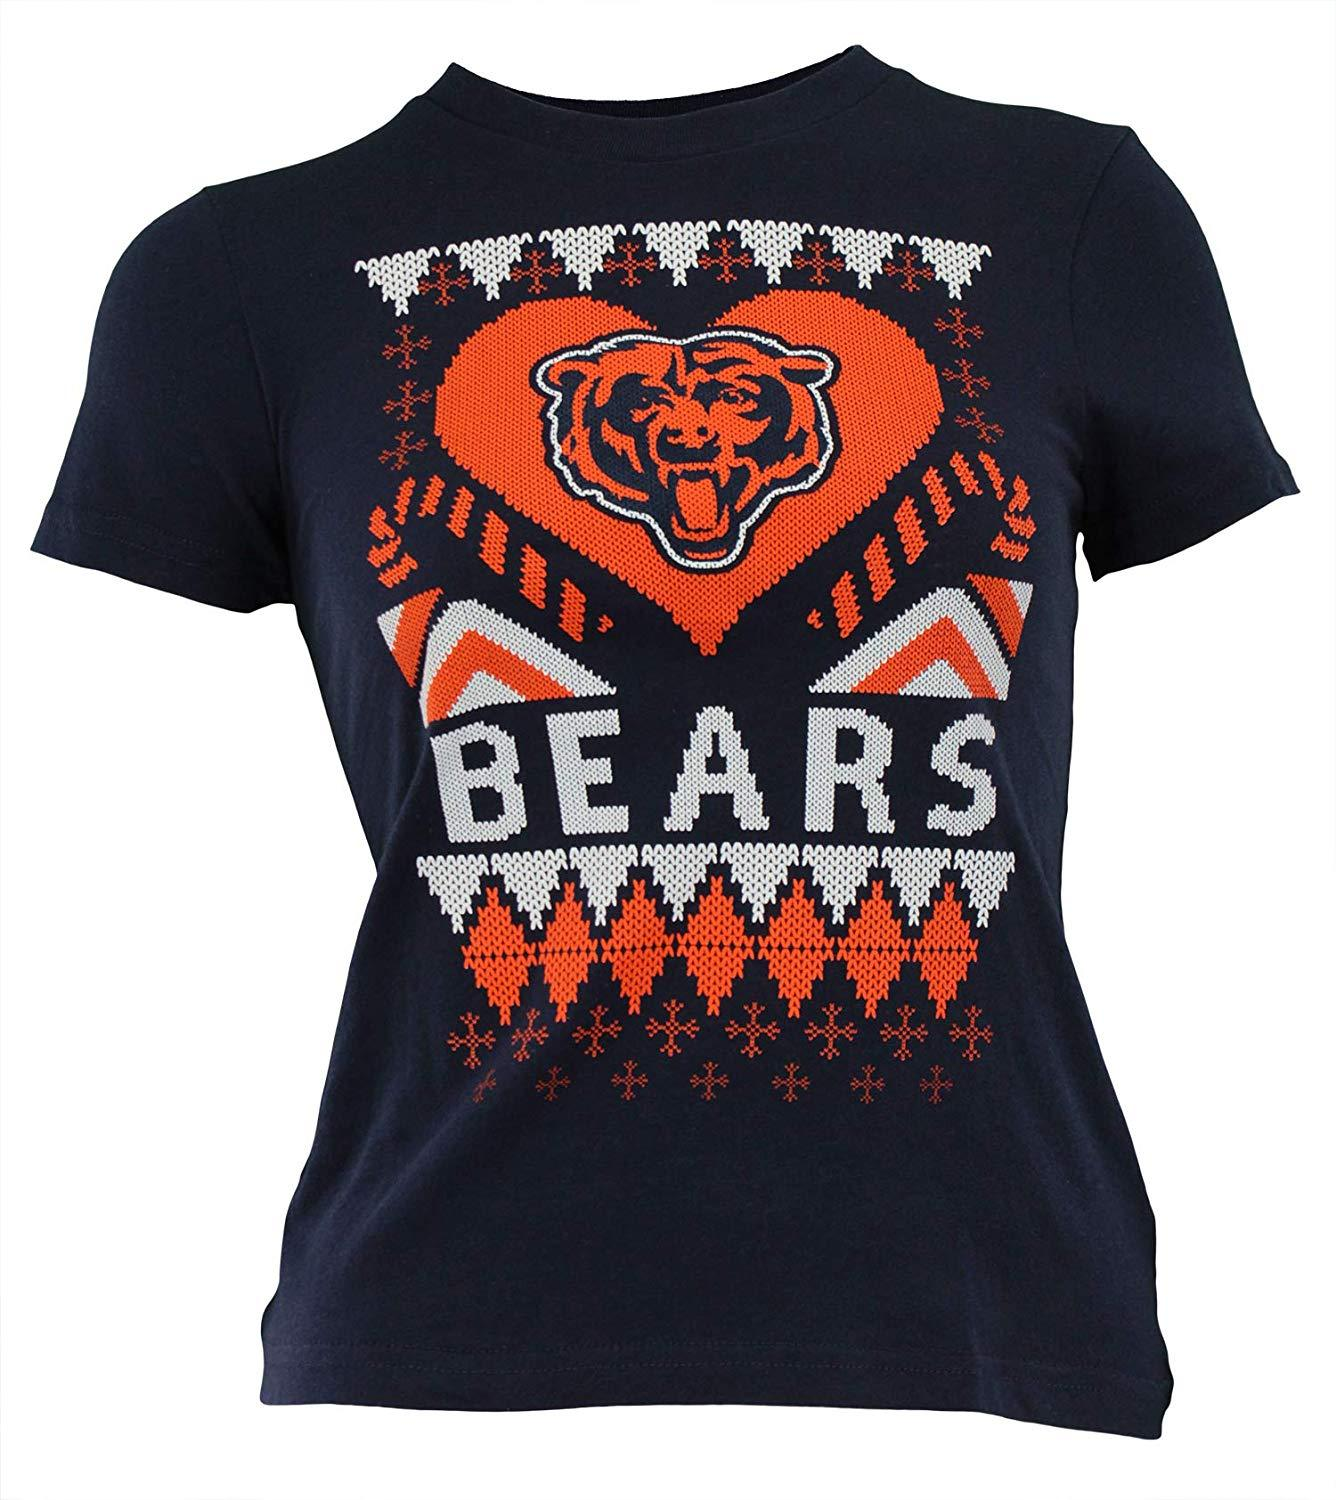 Outerstuff NFL Youth Girls Chicago Bears Candy Cane Love Tee